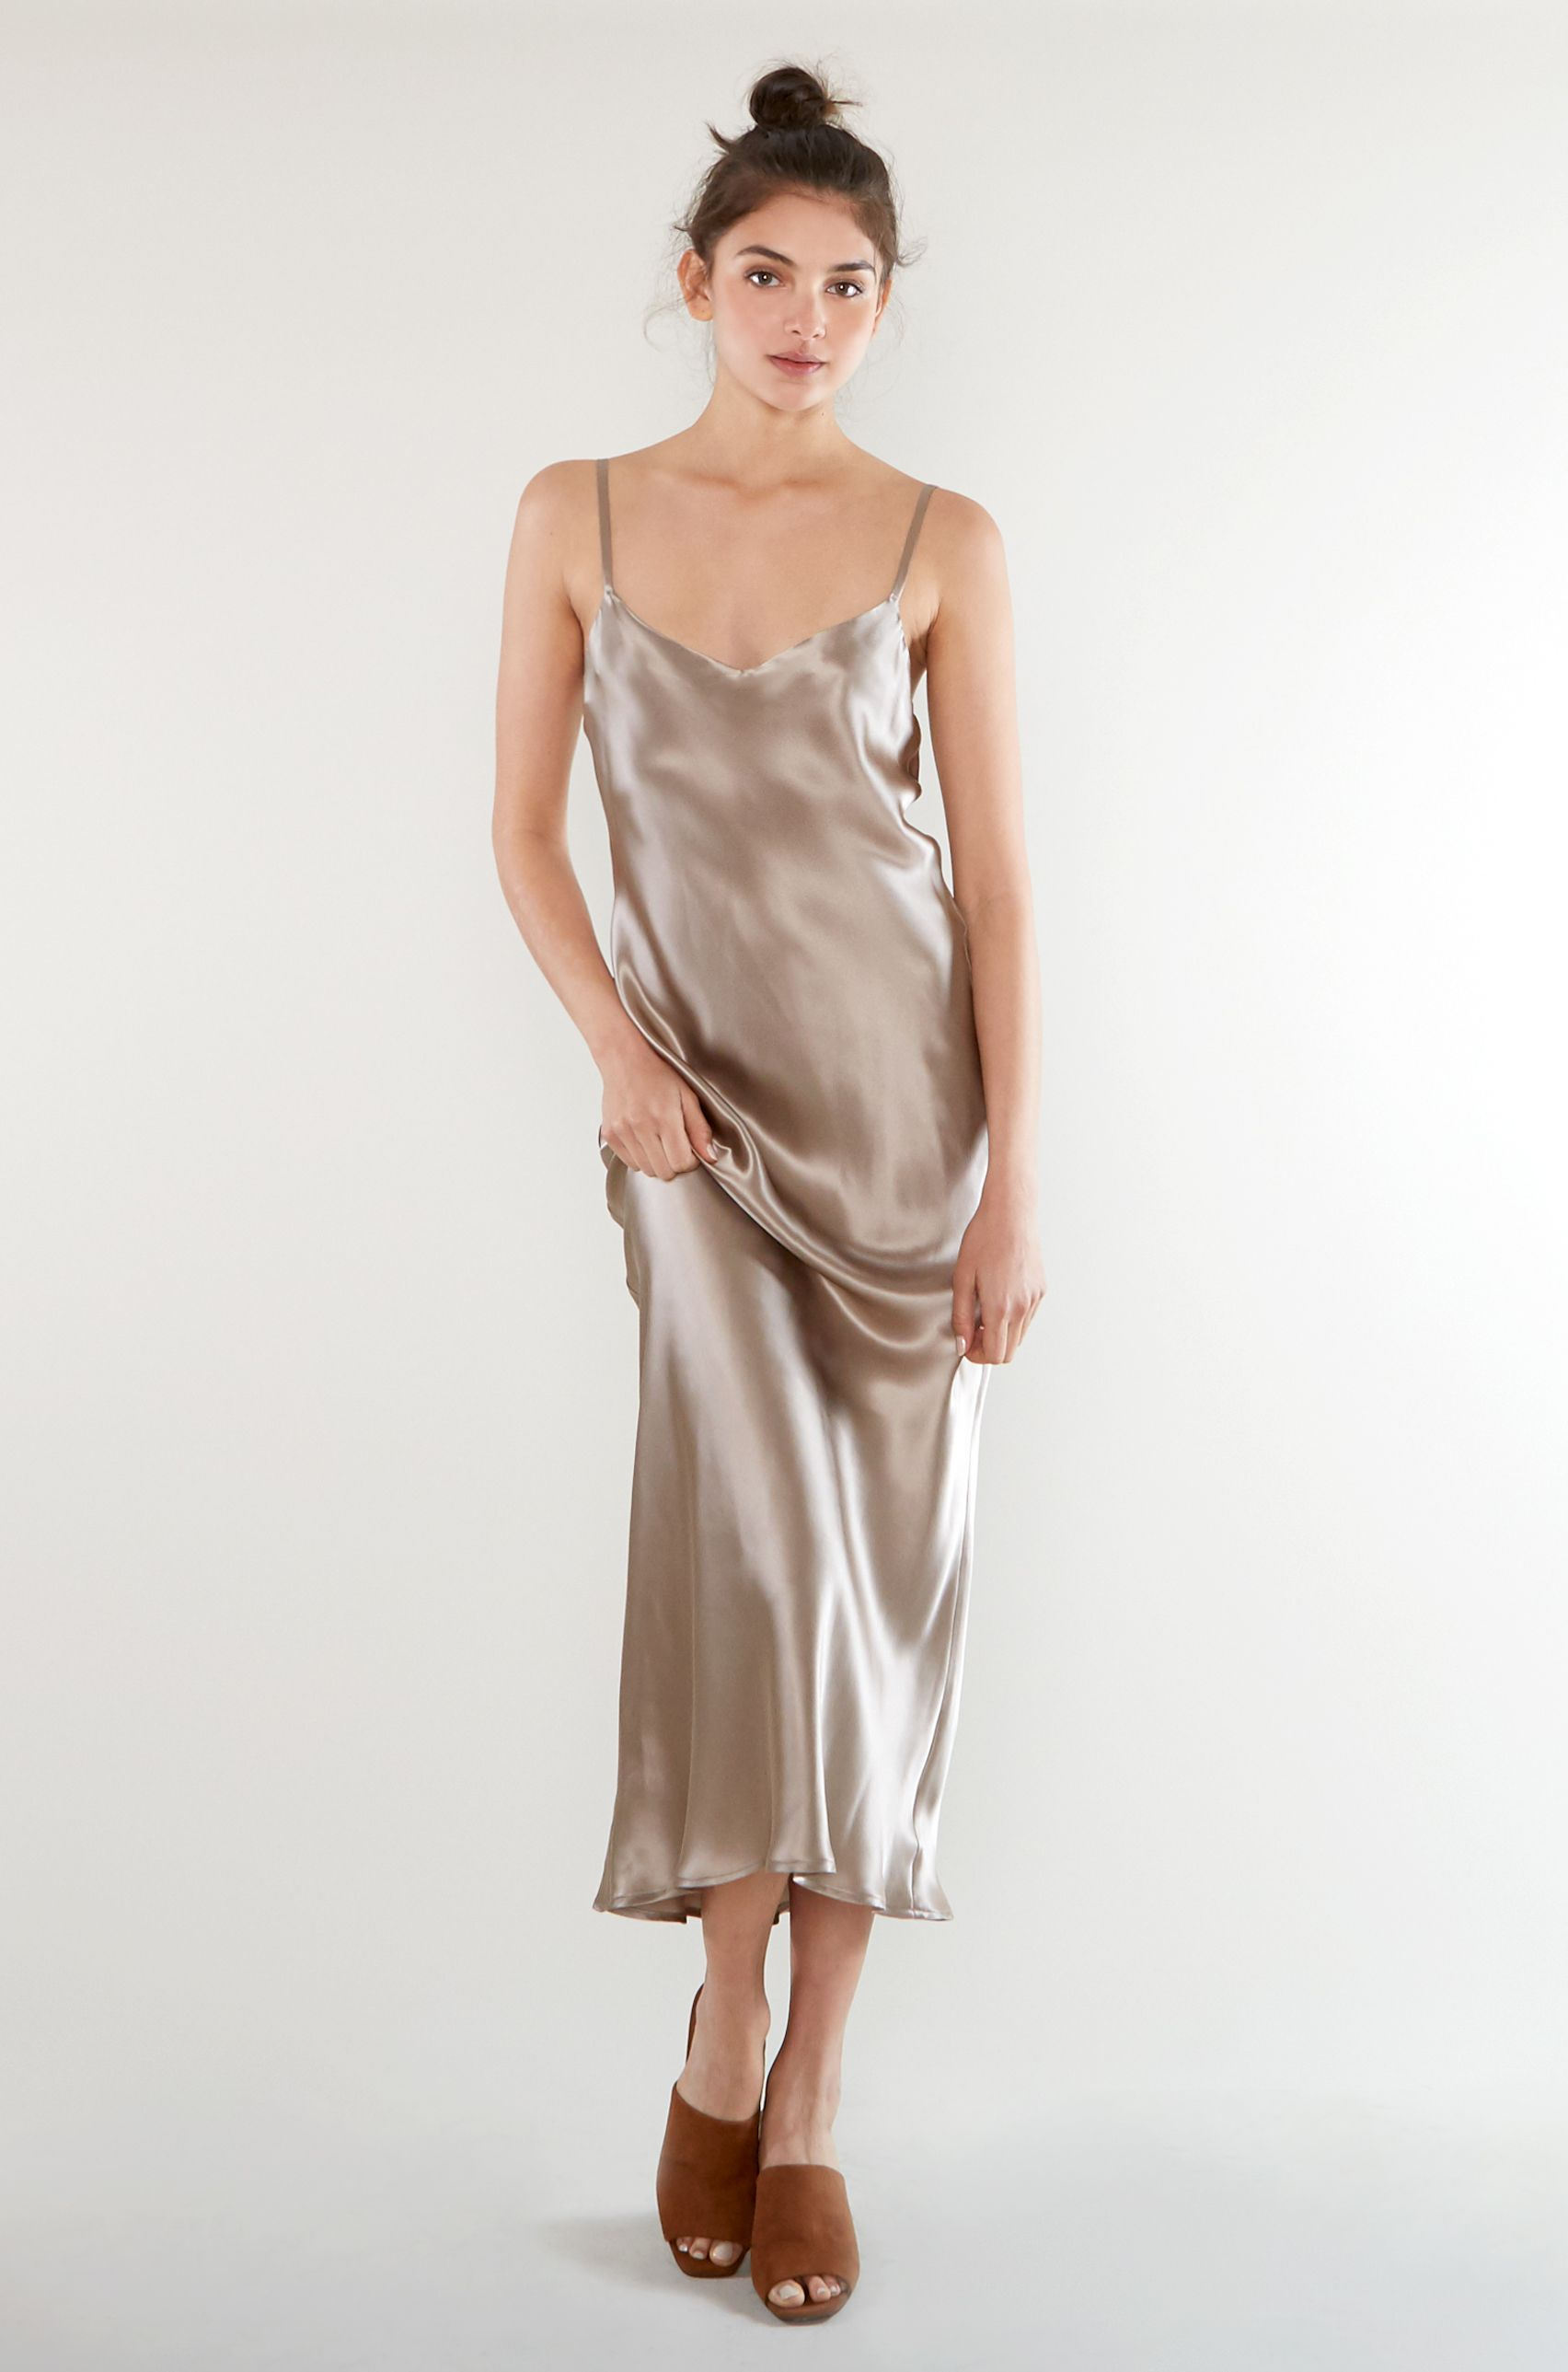 Oyster satin cocktail dress